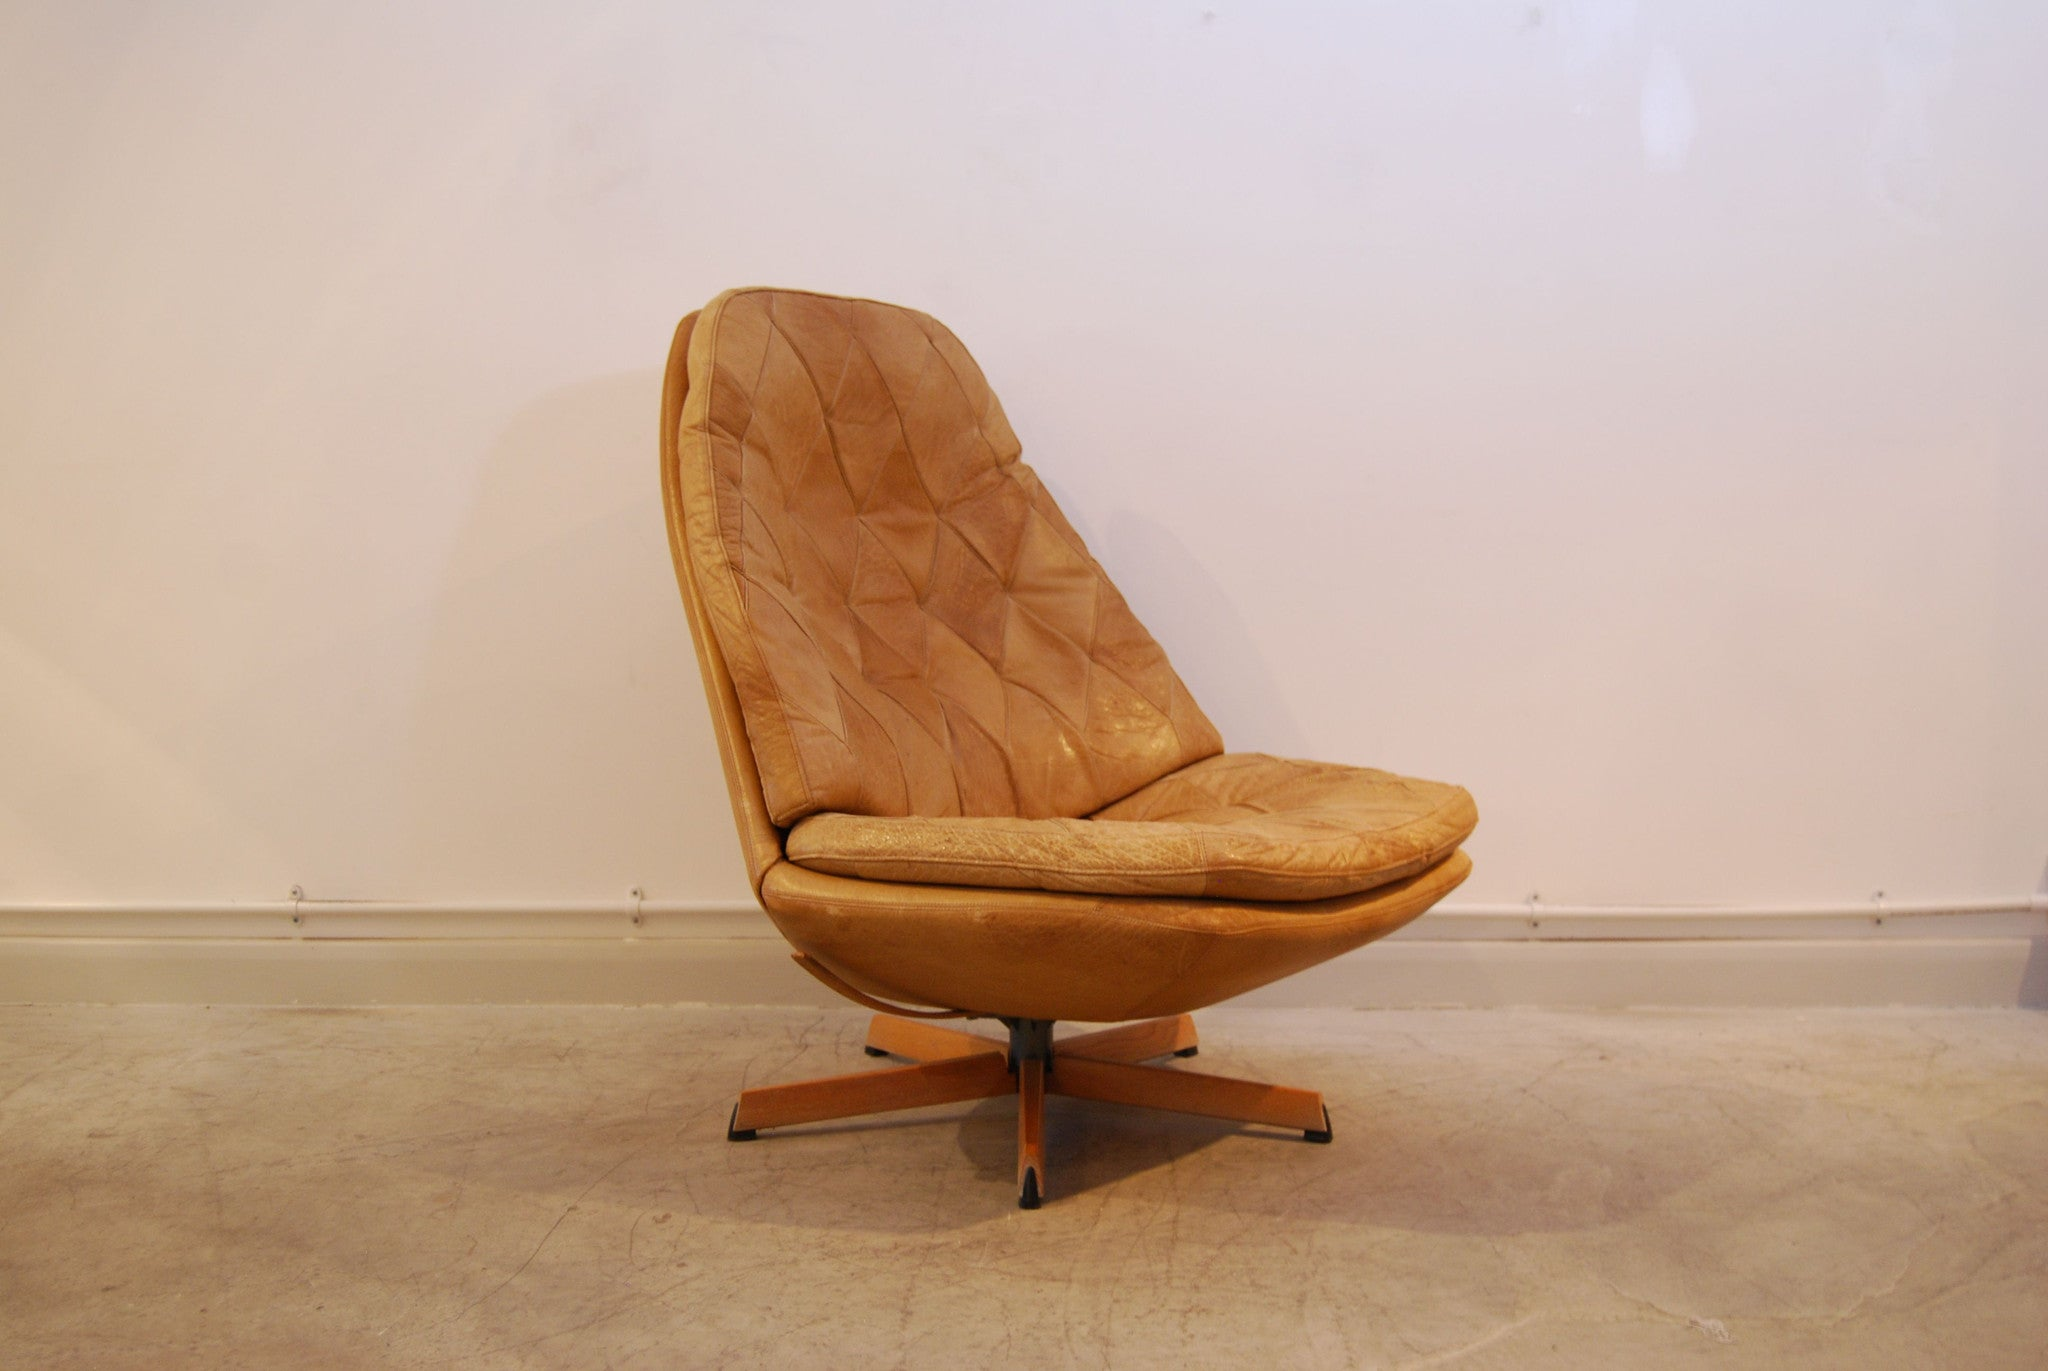 Chase & Sorensen Pair of reclining chairs by Madsen & Schubell